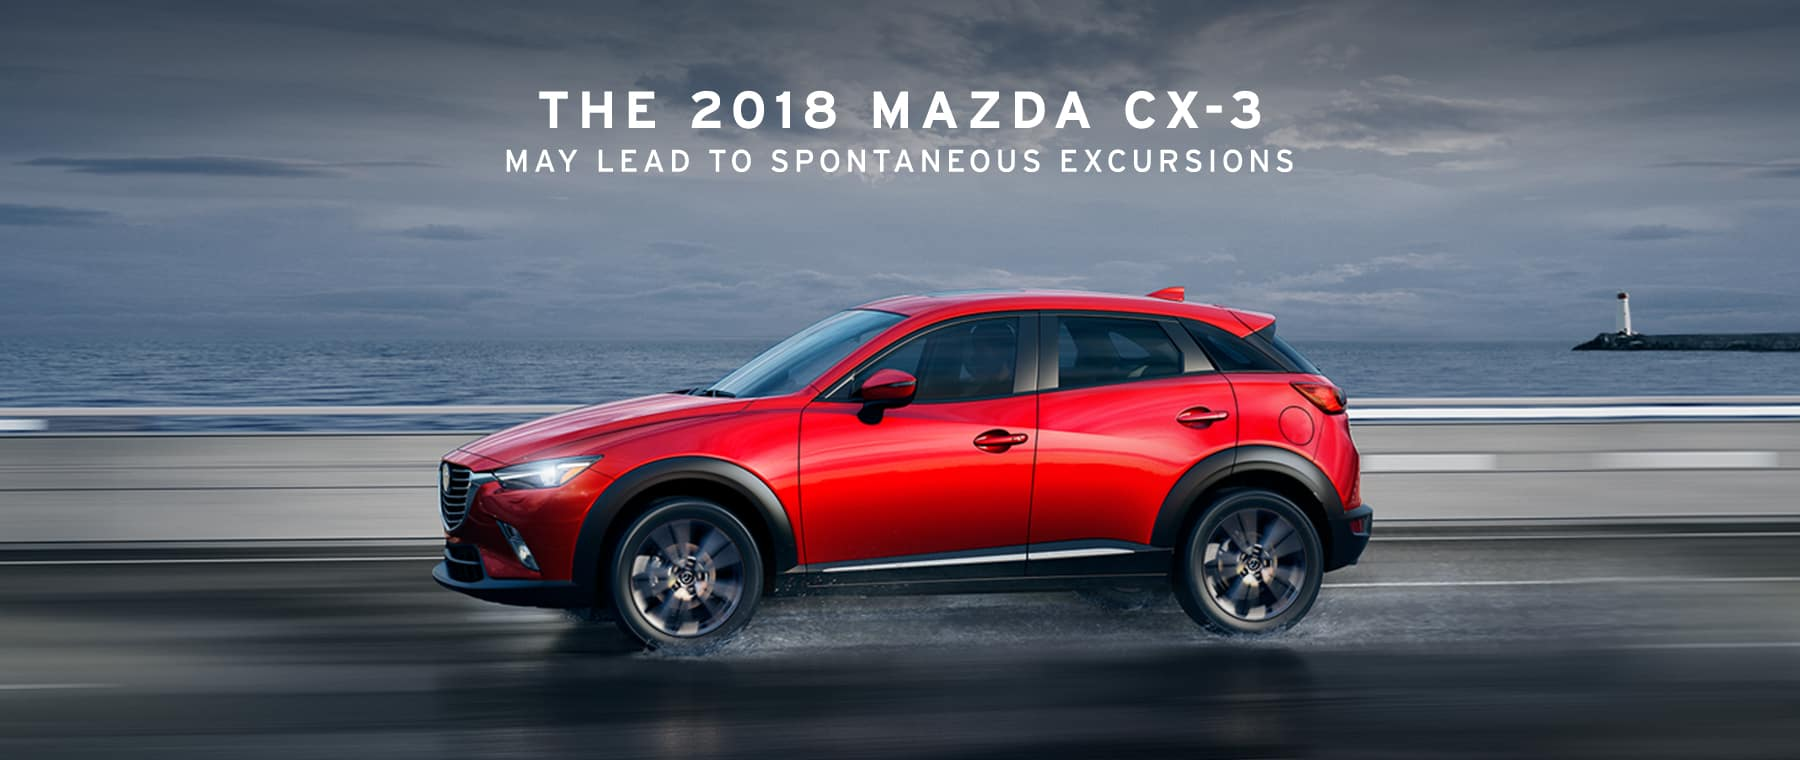 North Shore Mazda Mazda Dealer In Danvers MA - Mazda dealerships in maine